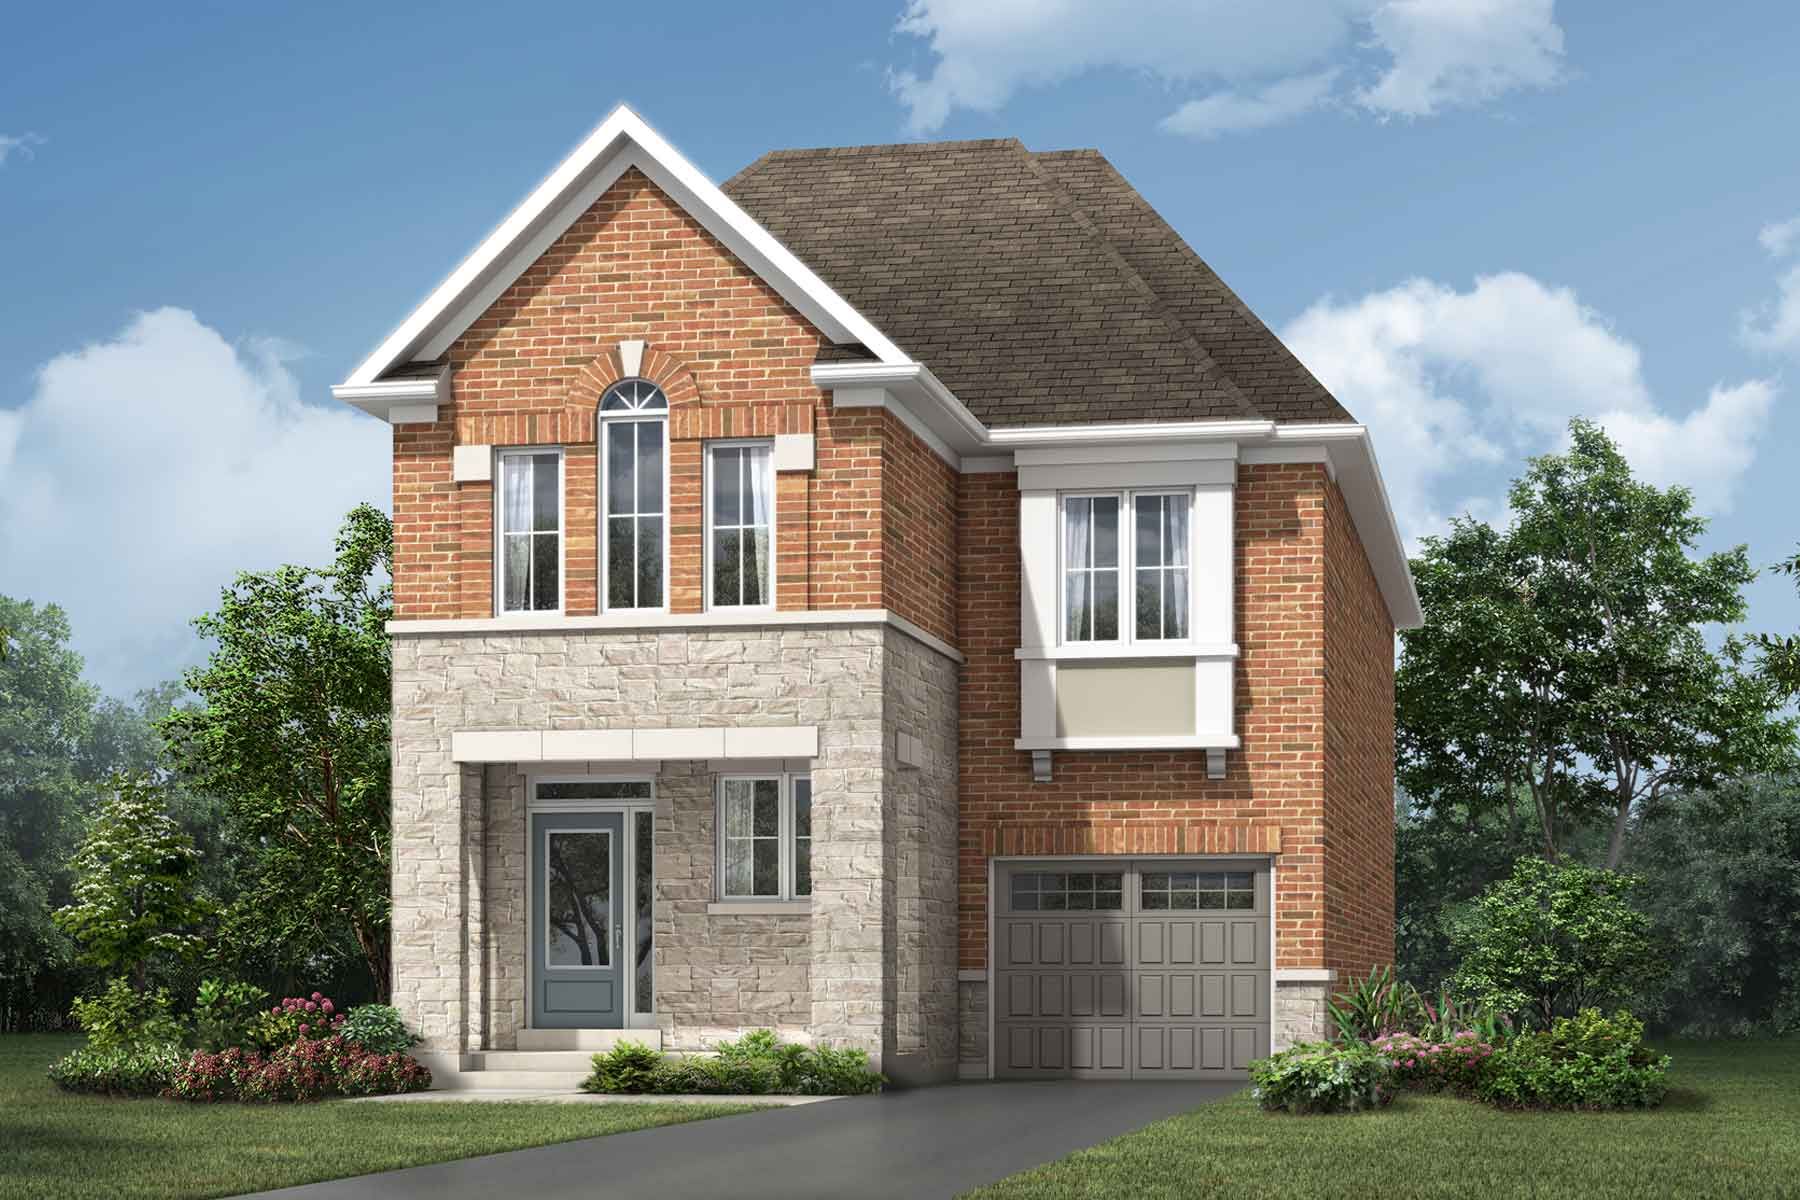 Whitney Plan ElevationTraditional_Soleil_Whitney at Soleil in Milton Ontario by Mattamy Homes